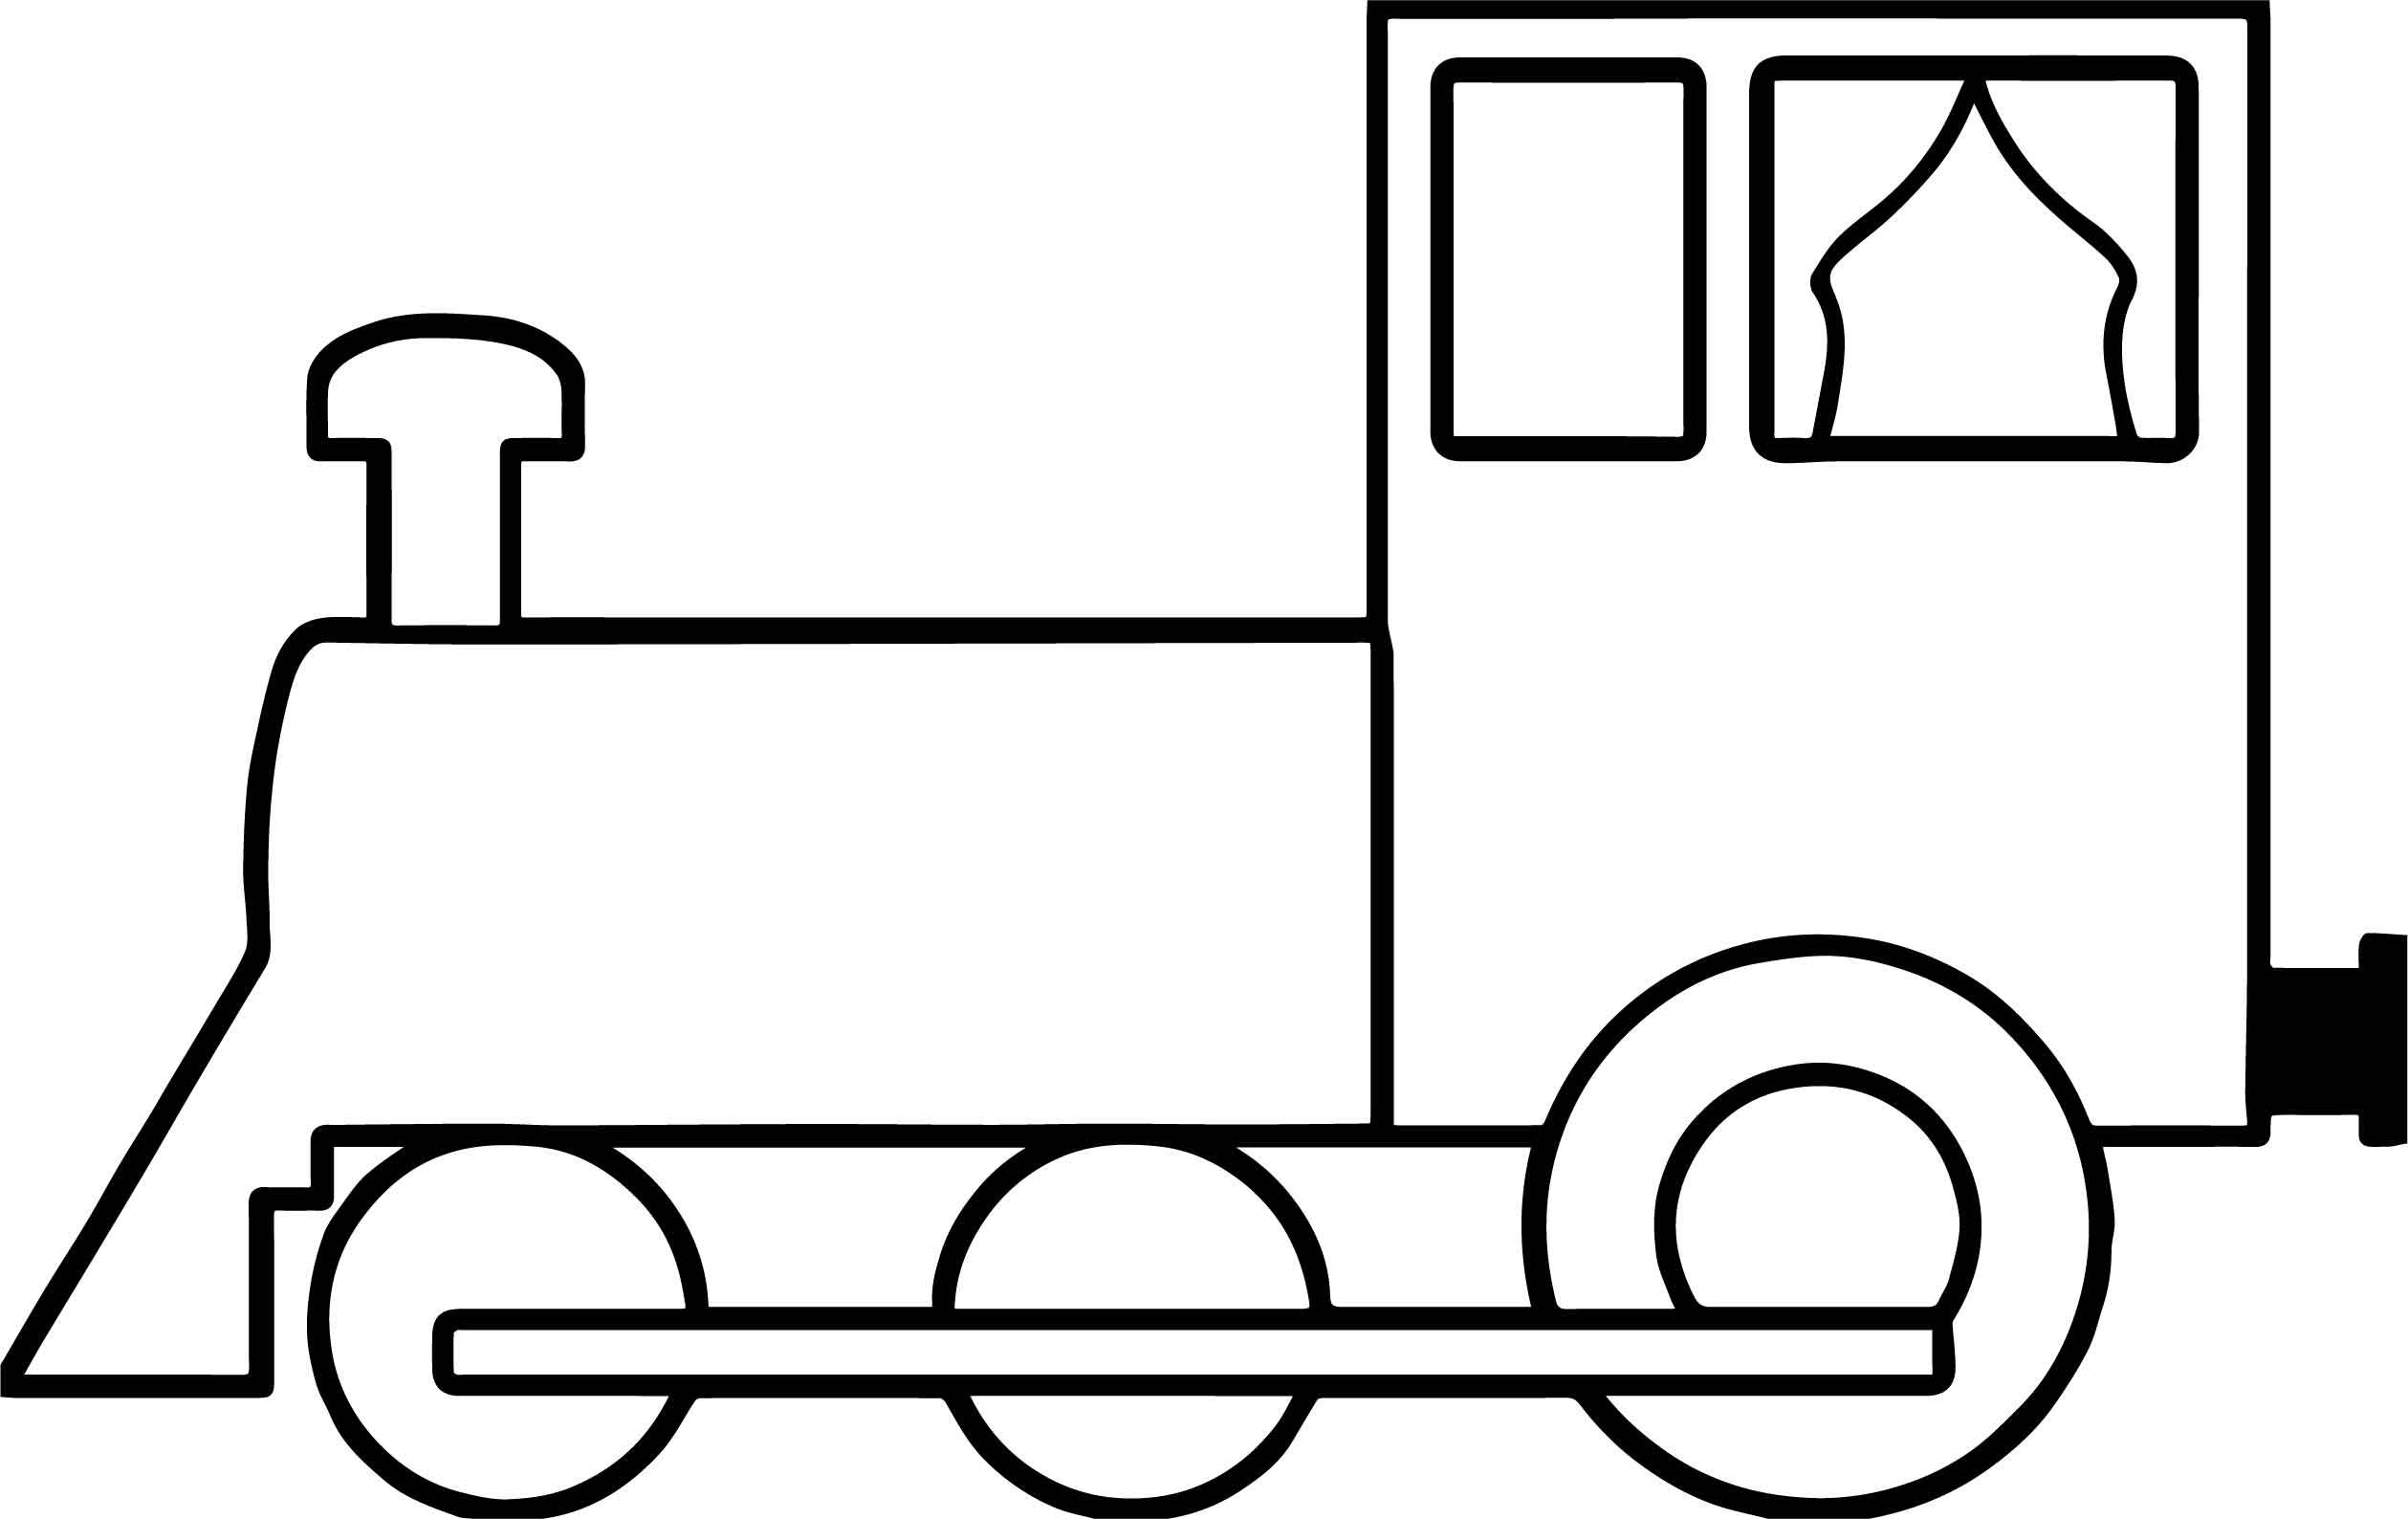 easy train coloring pages simple train coloring page at getdrawings free download easy train pages coloring